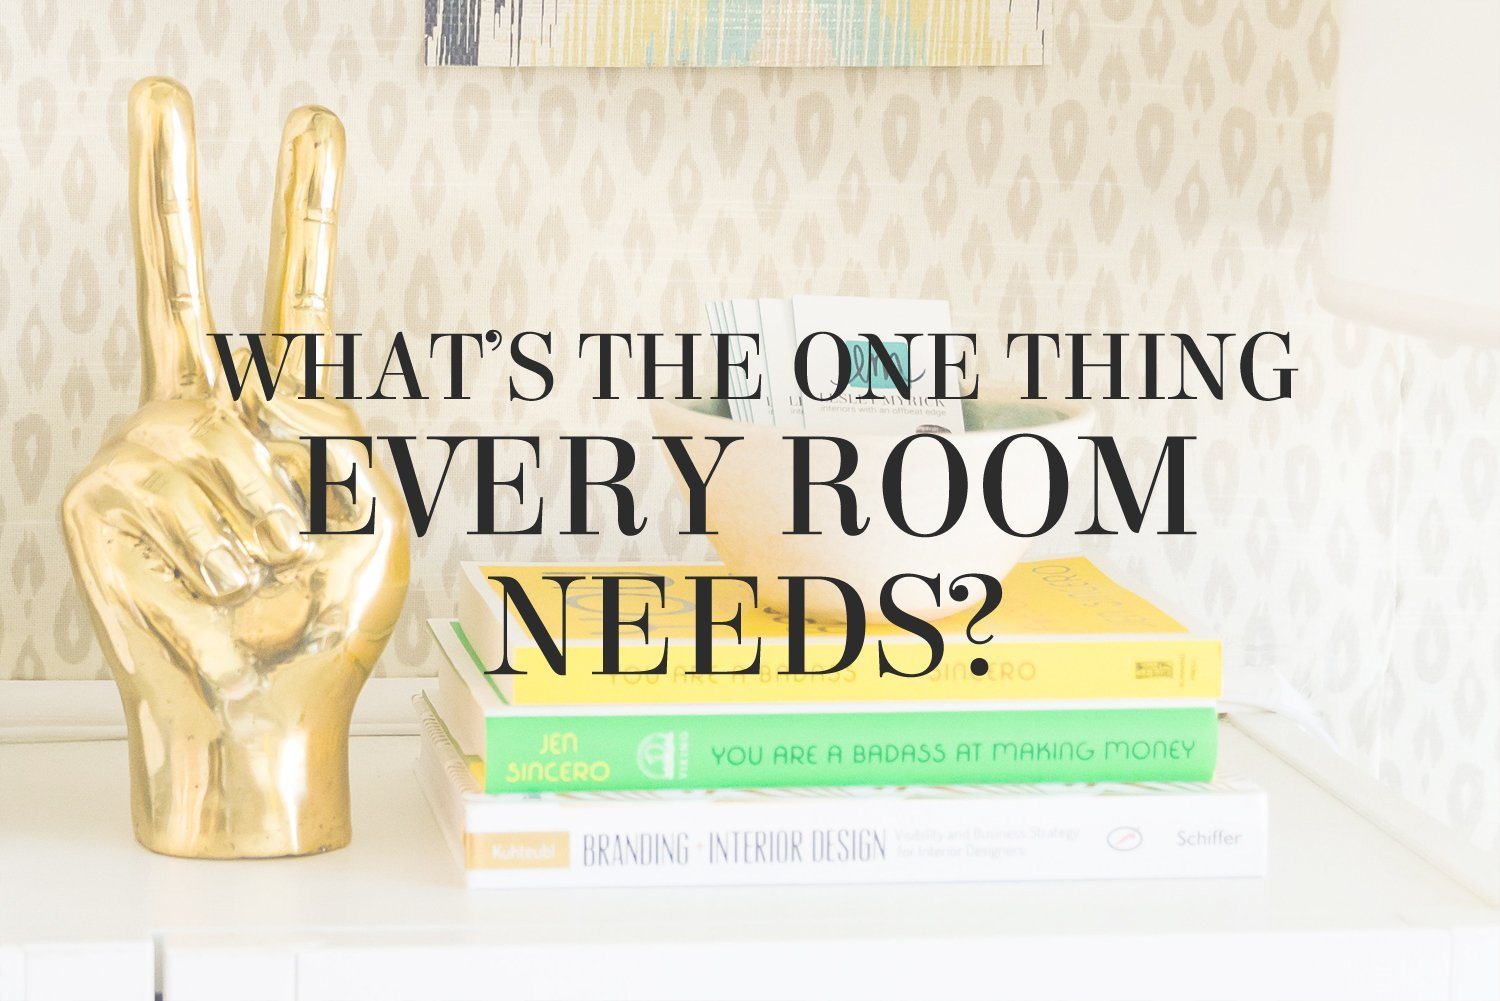 What's the one thing every room needs? Interior designer Lesley Myrick shares her must-have item for any room.